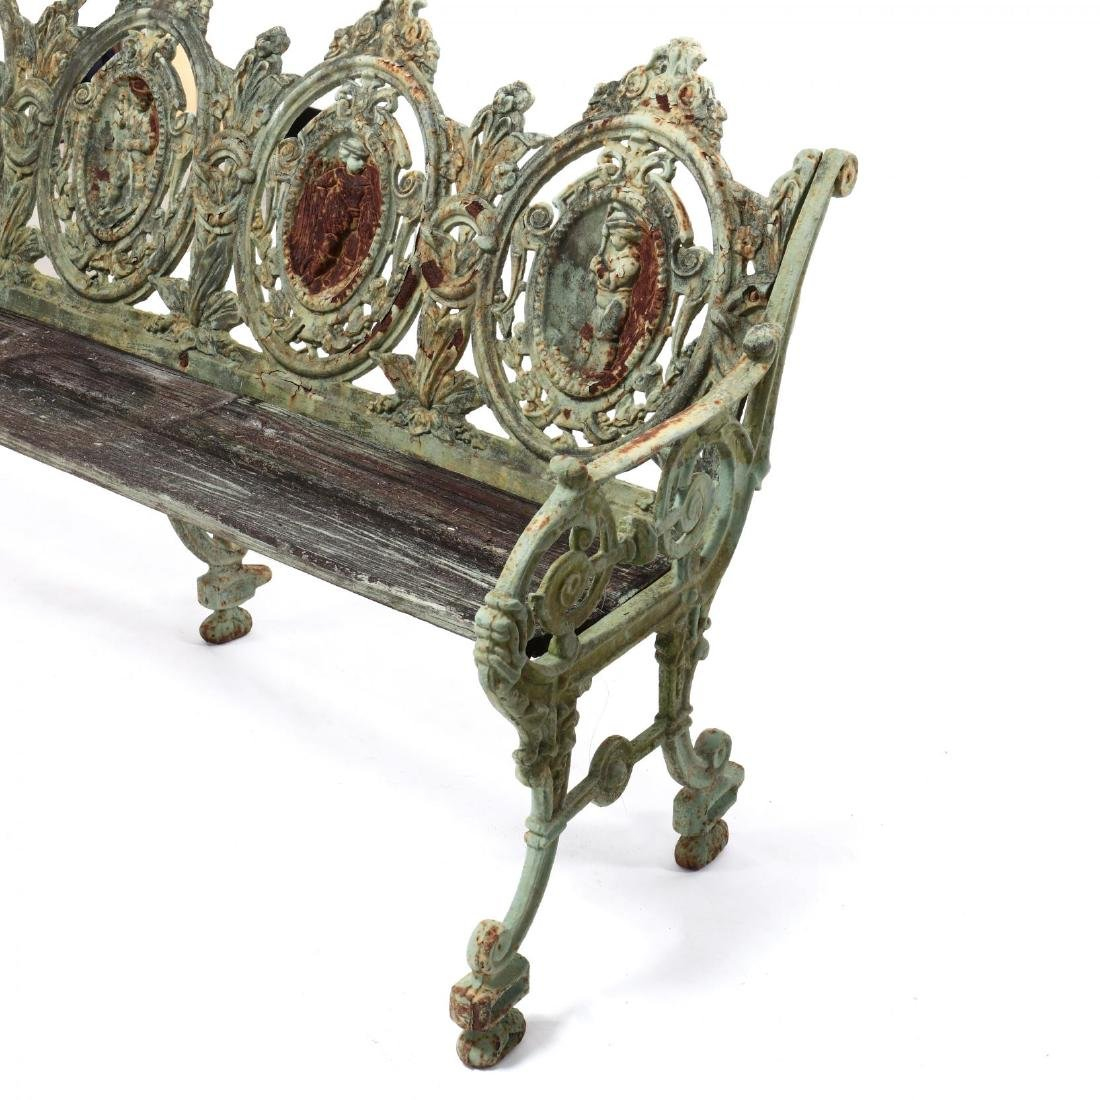 Pair of Renaissance Revival Cast Iron Garden Benches - 7